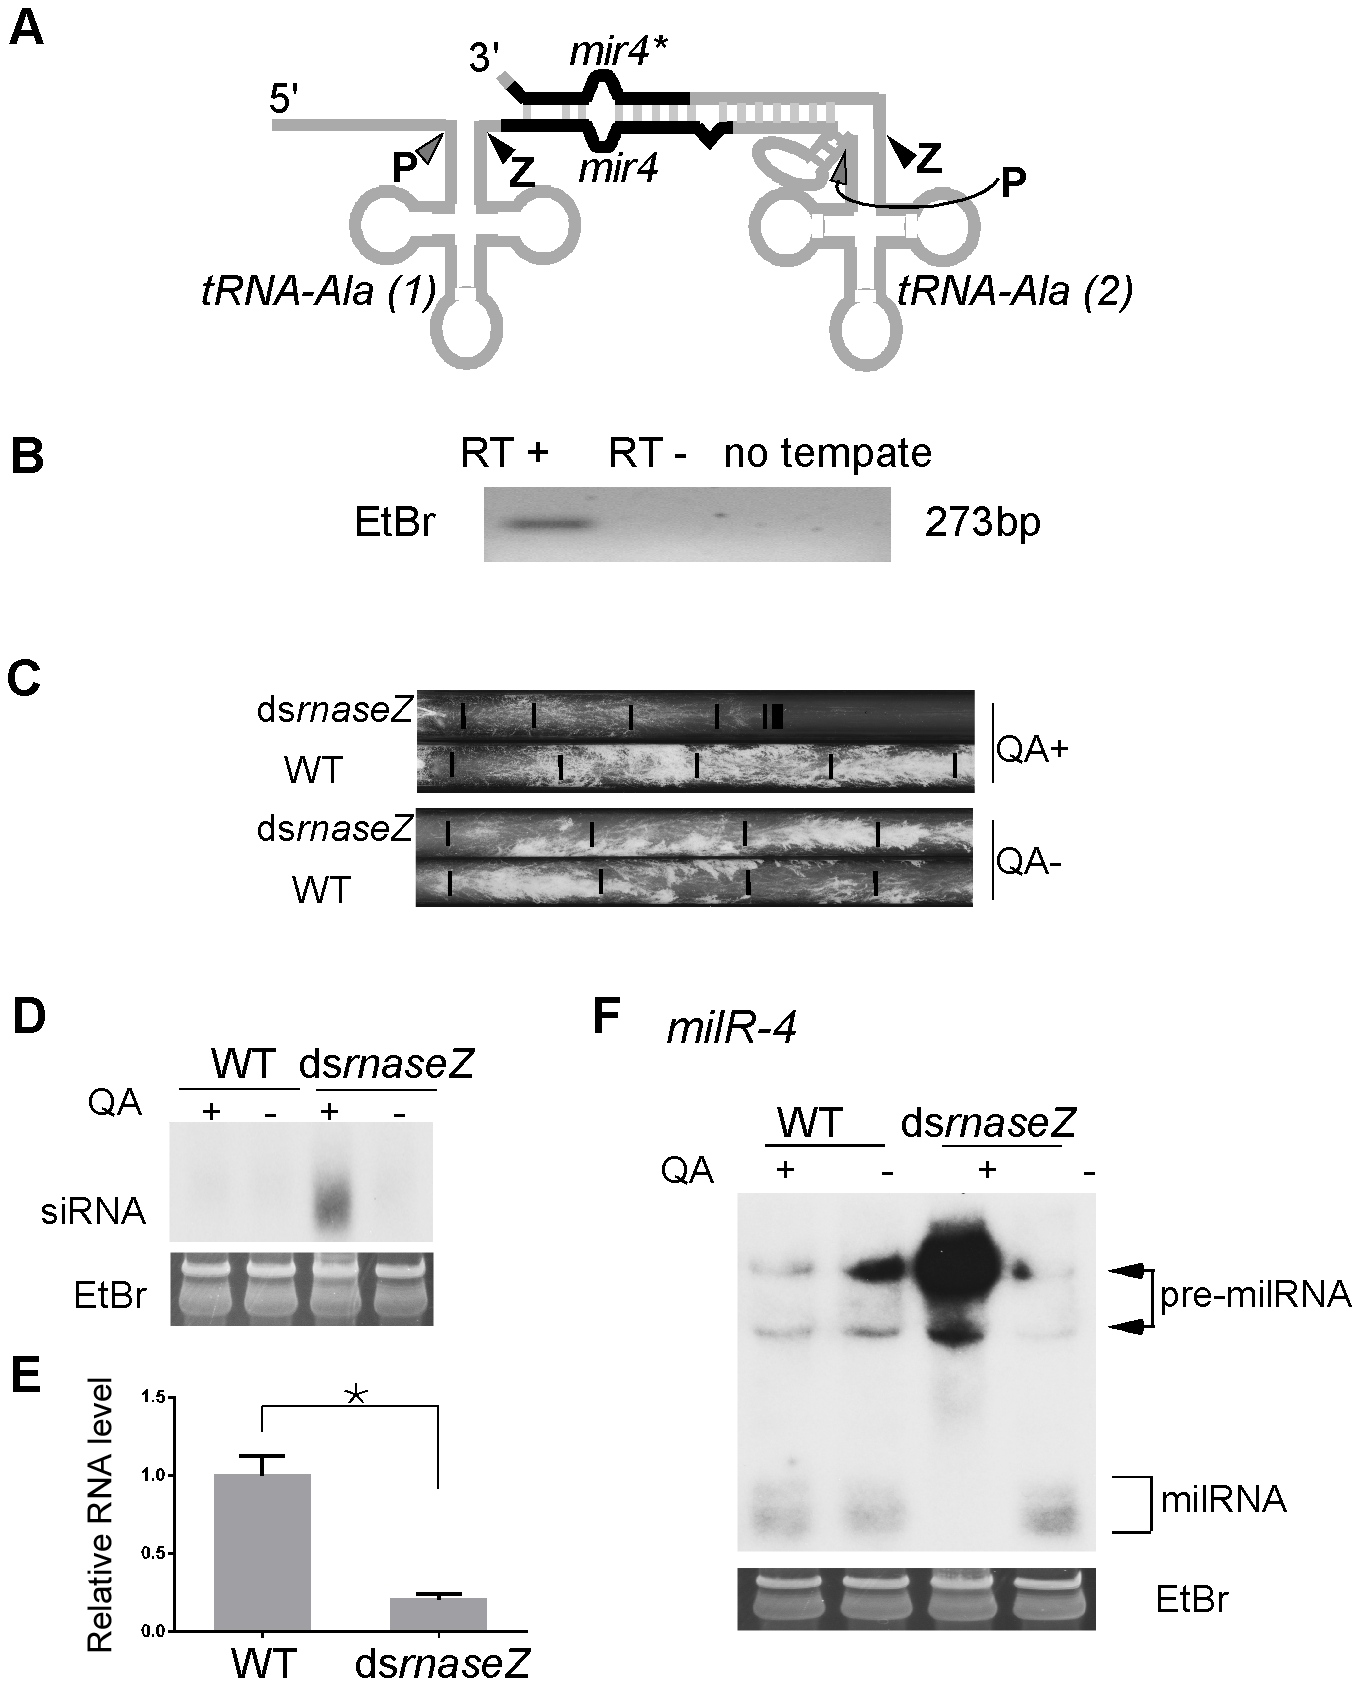 RNase Z is required for <i>milR-4</i> processing.